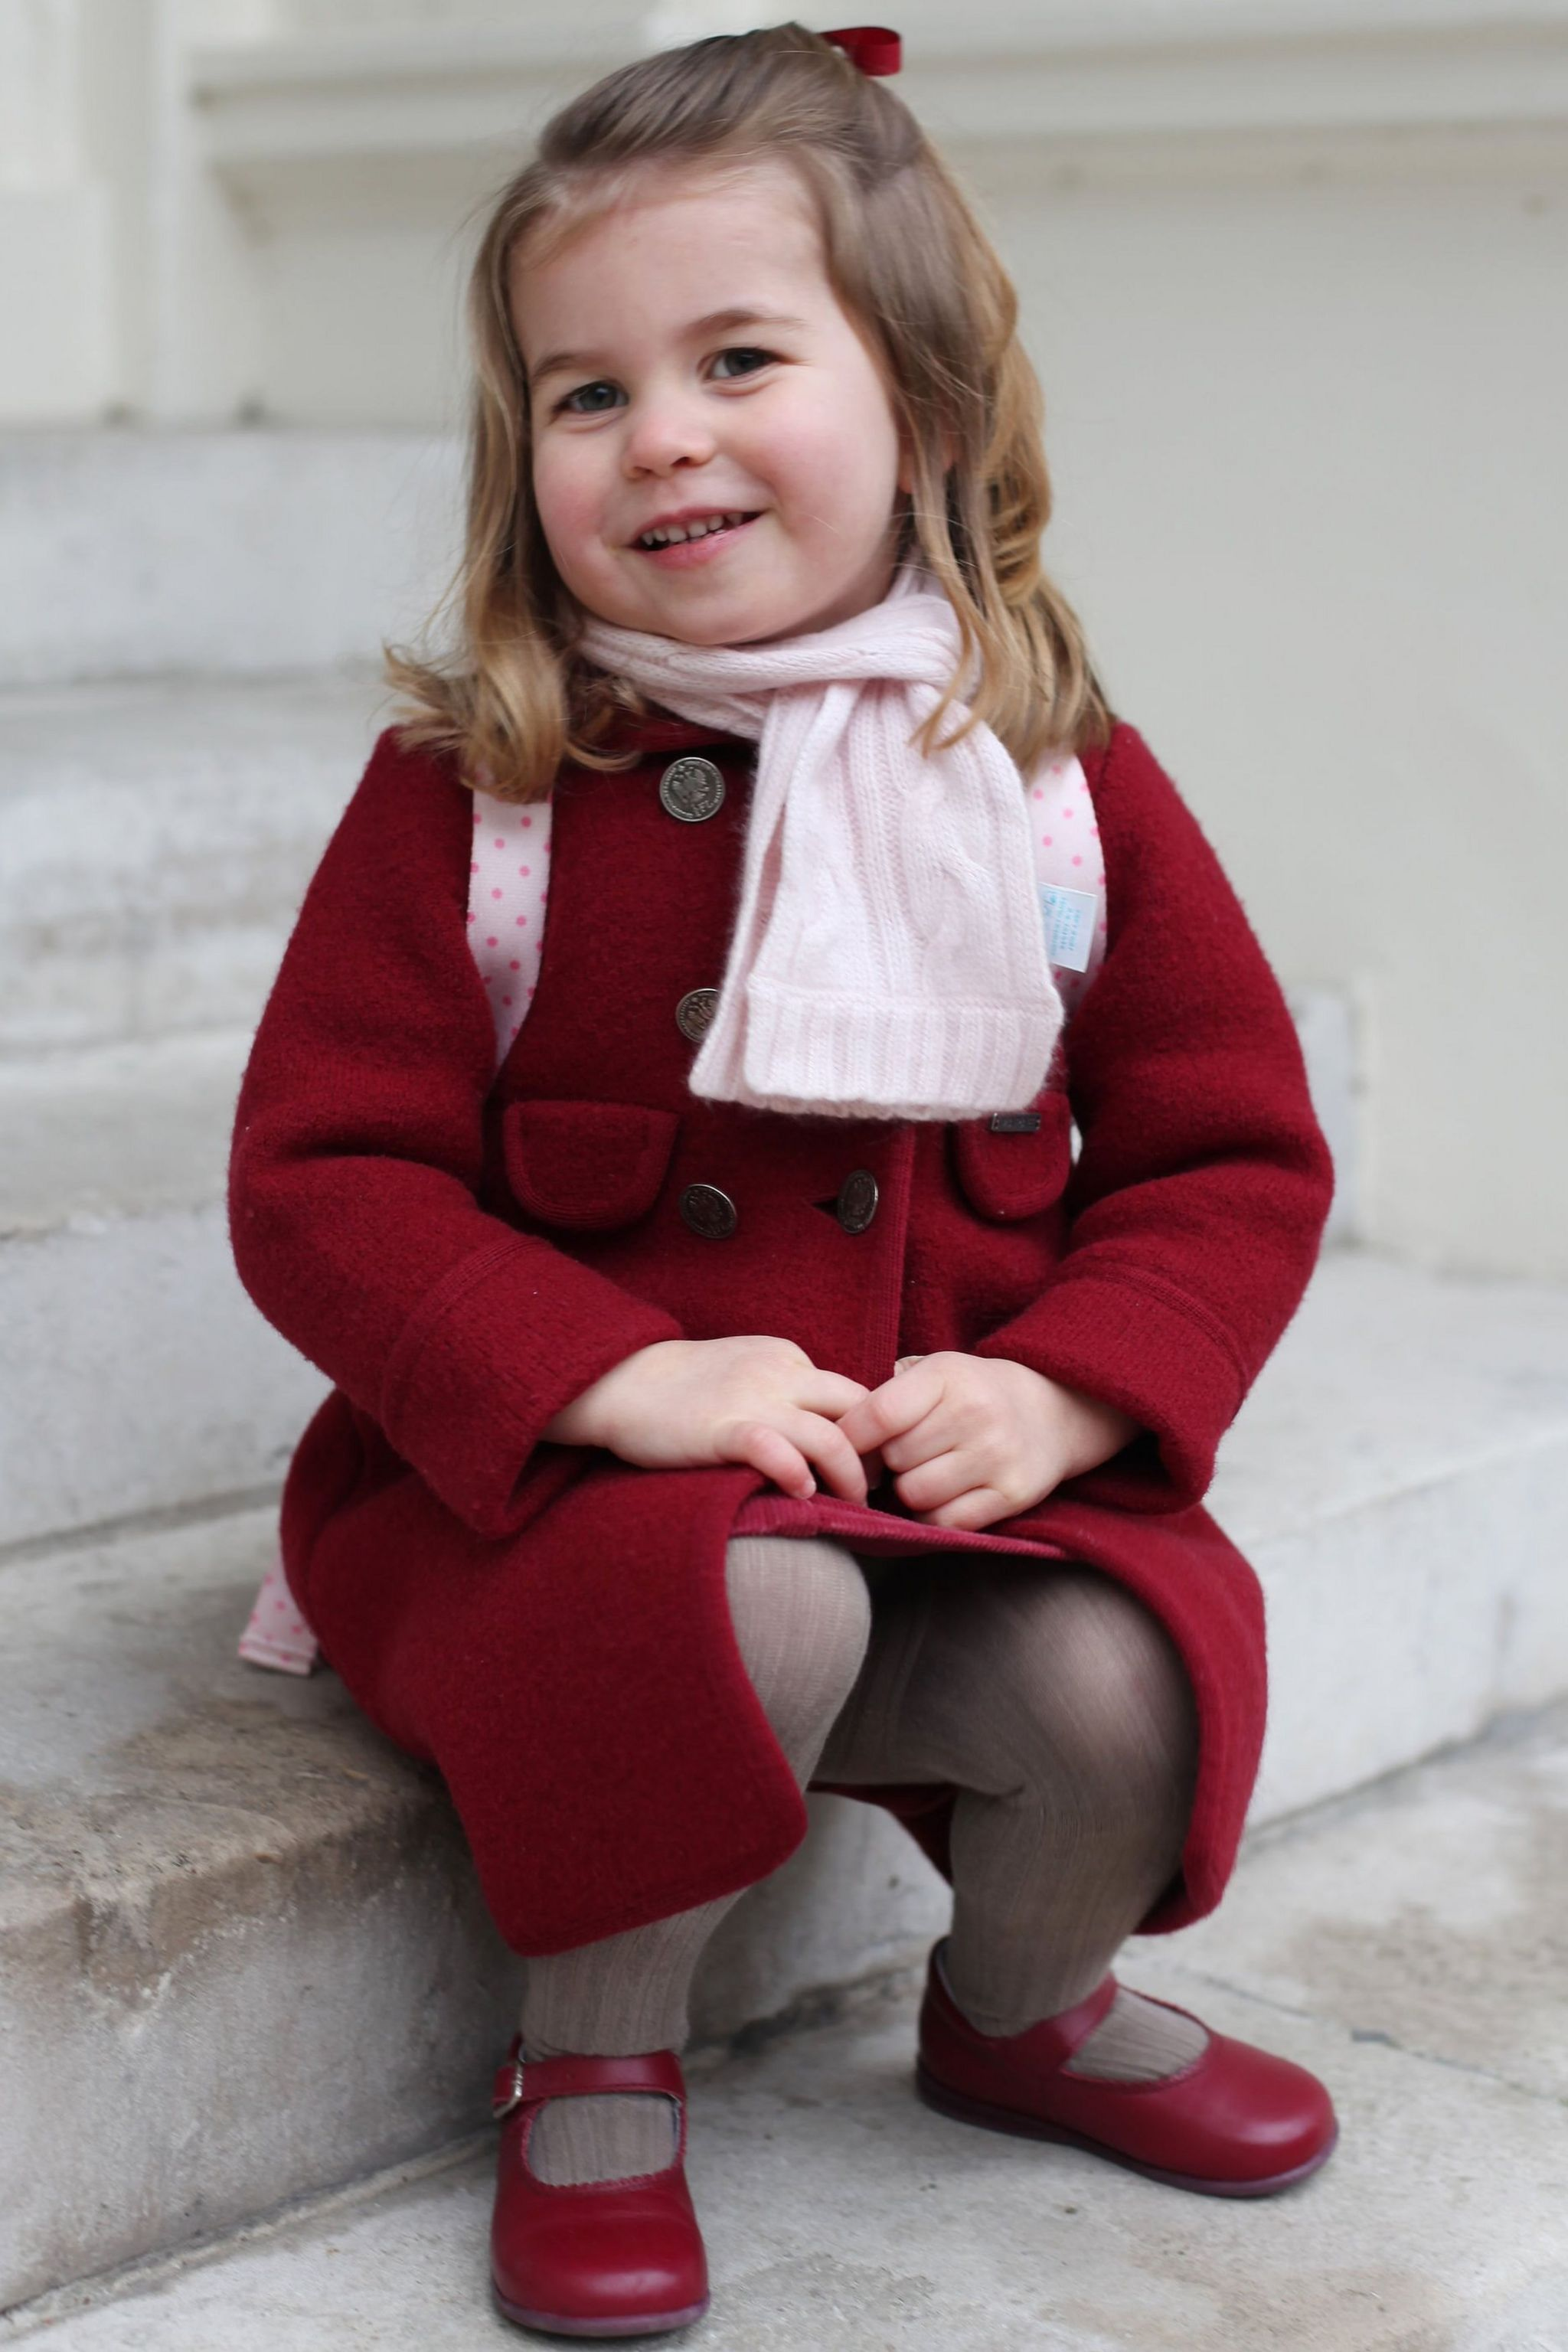 Princess Charlotte taken by her mother at Kensington Palace this morning shortly before the princess left for her first day of nursery in 2018